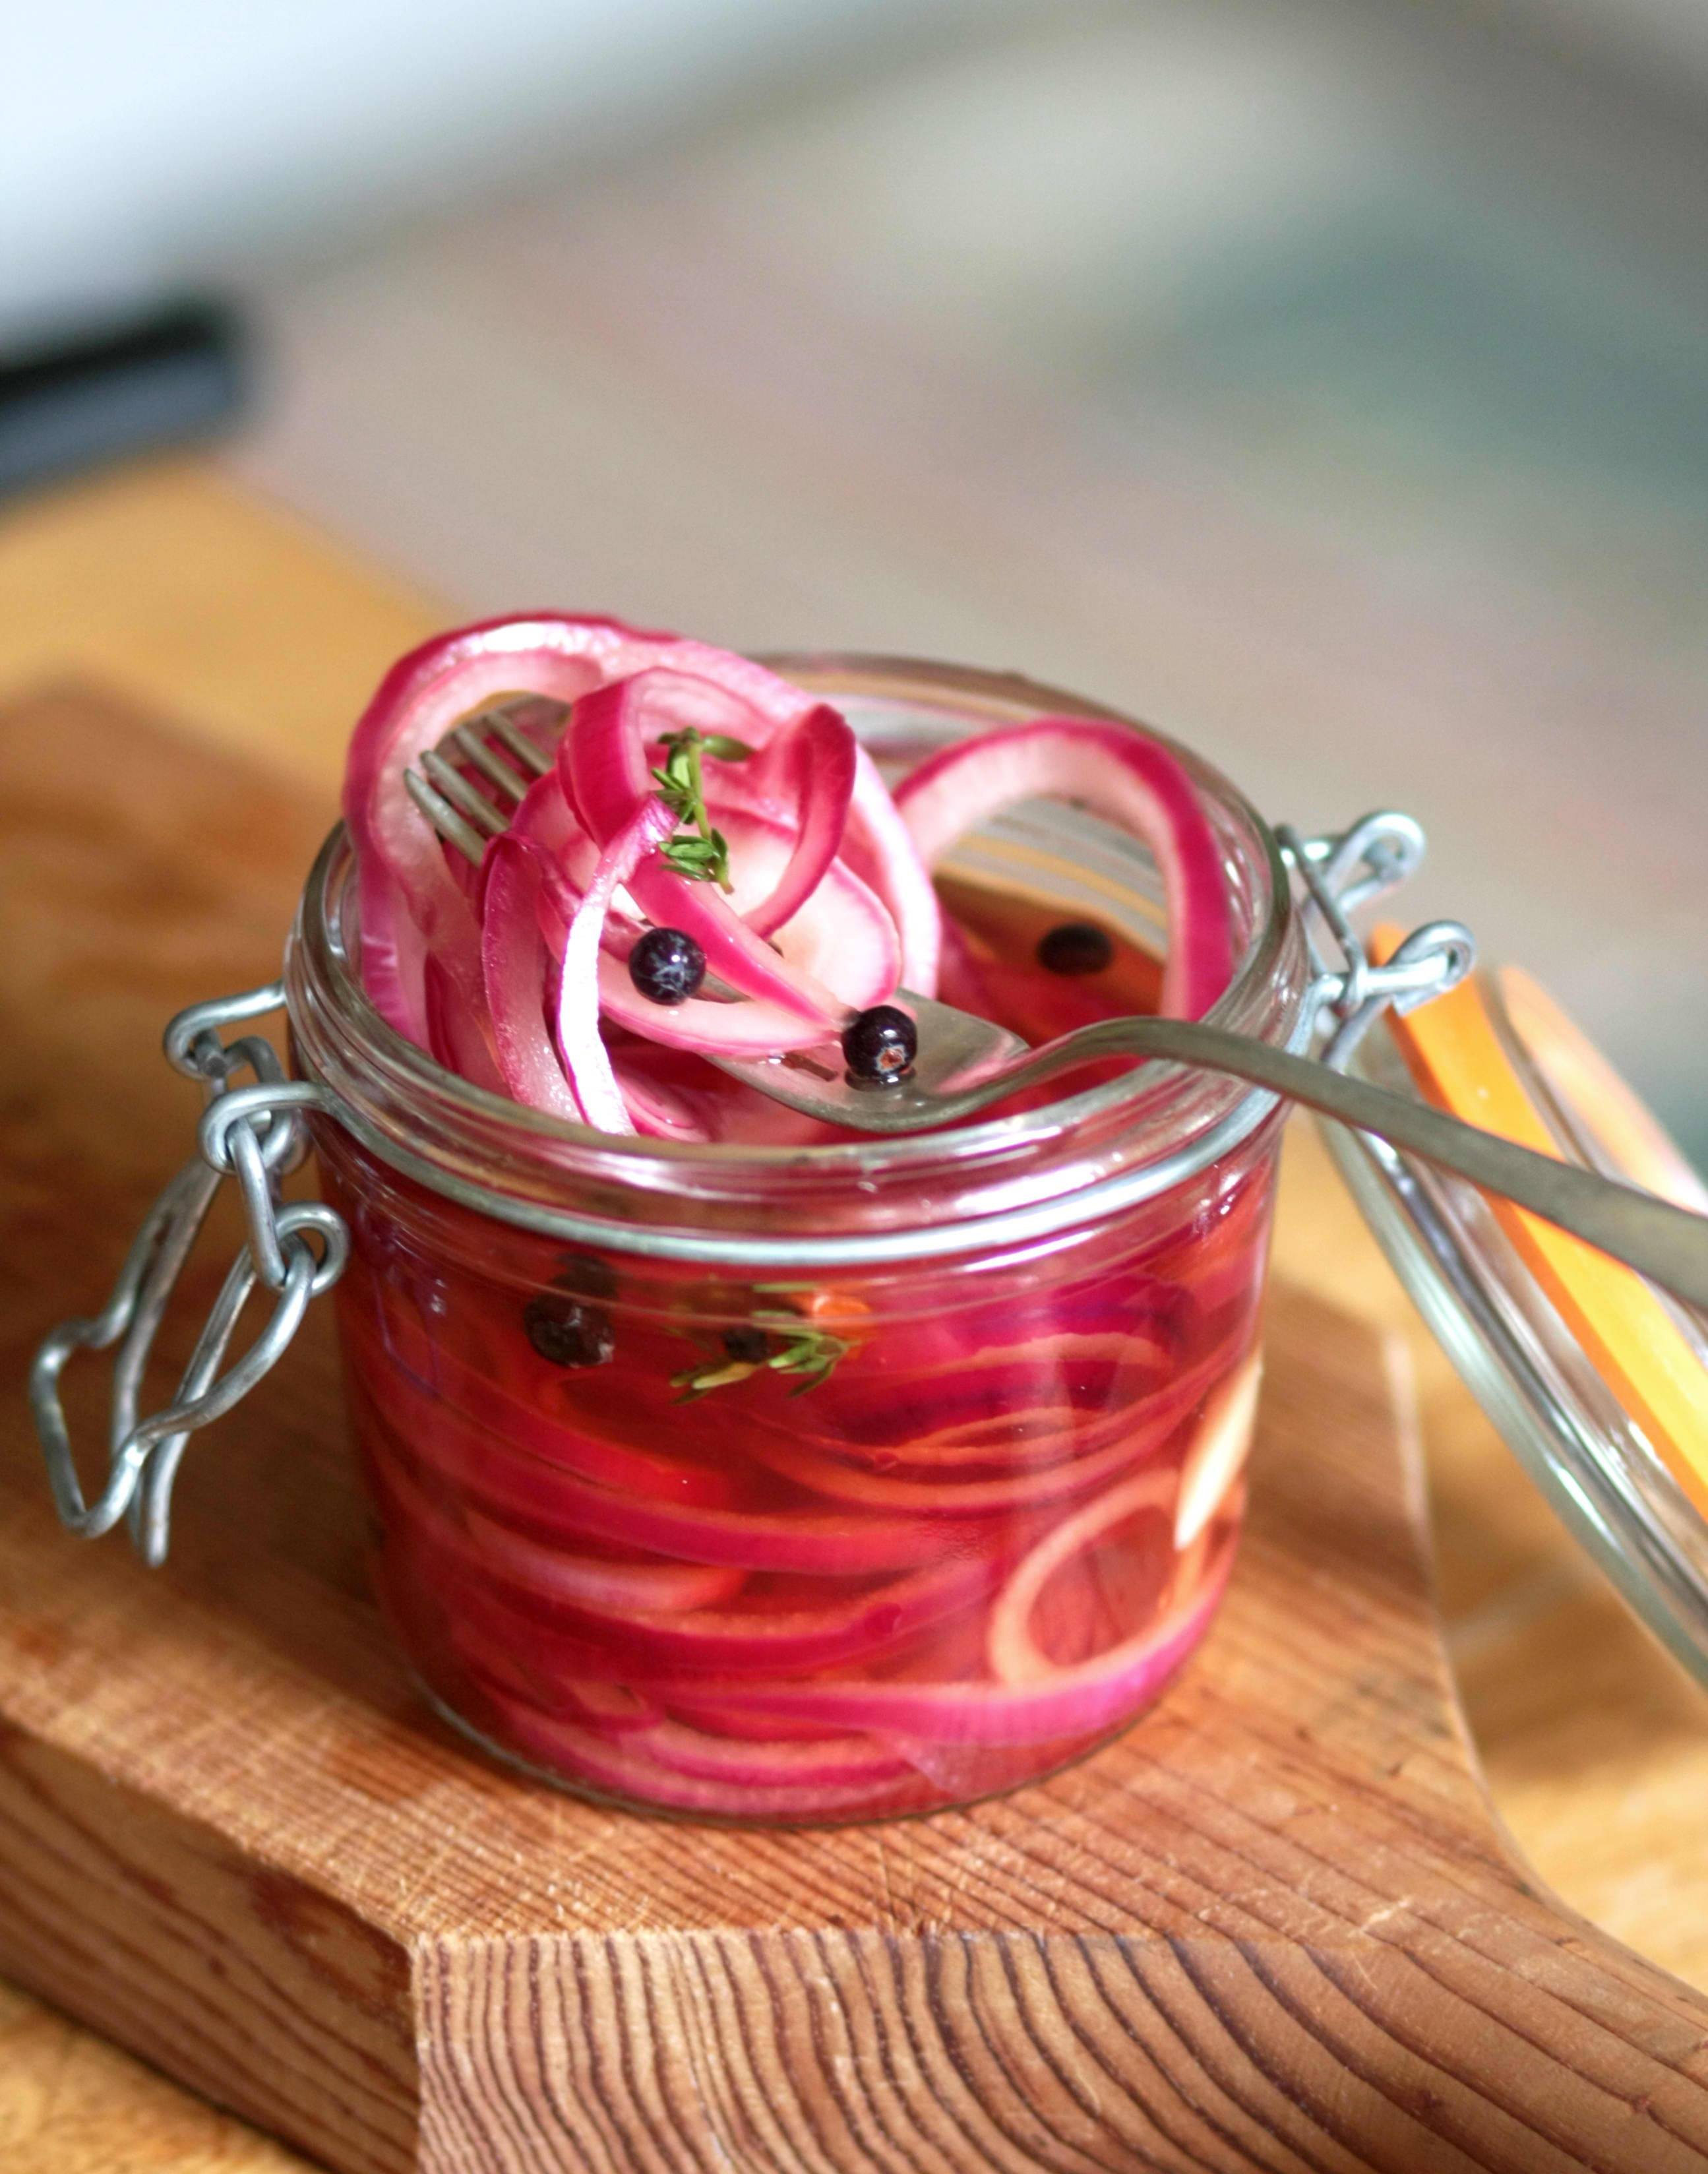 How To Make Quick-Pickled Red Onions